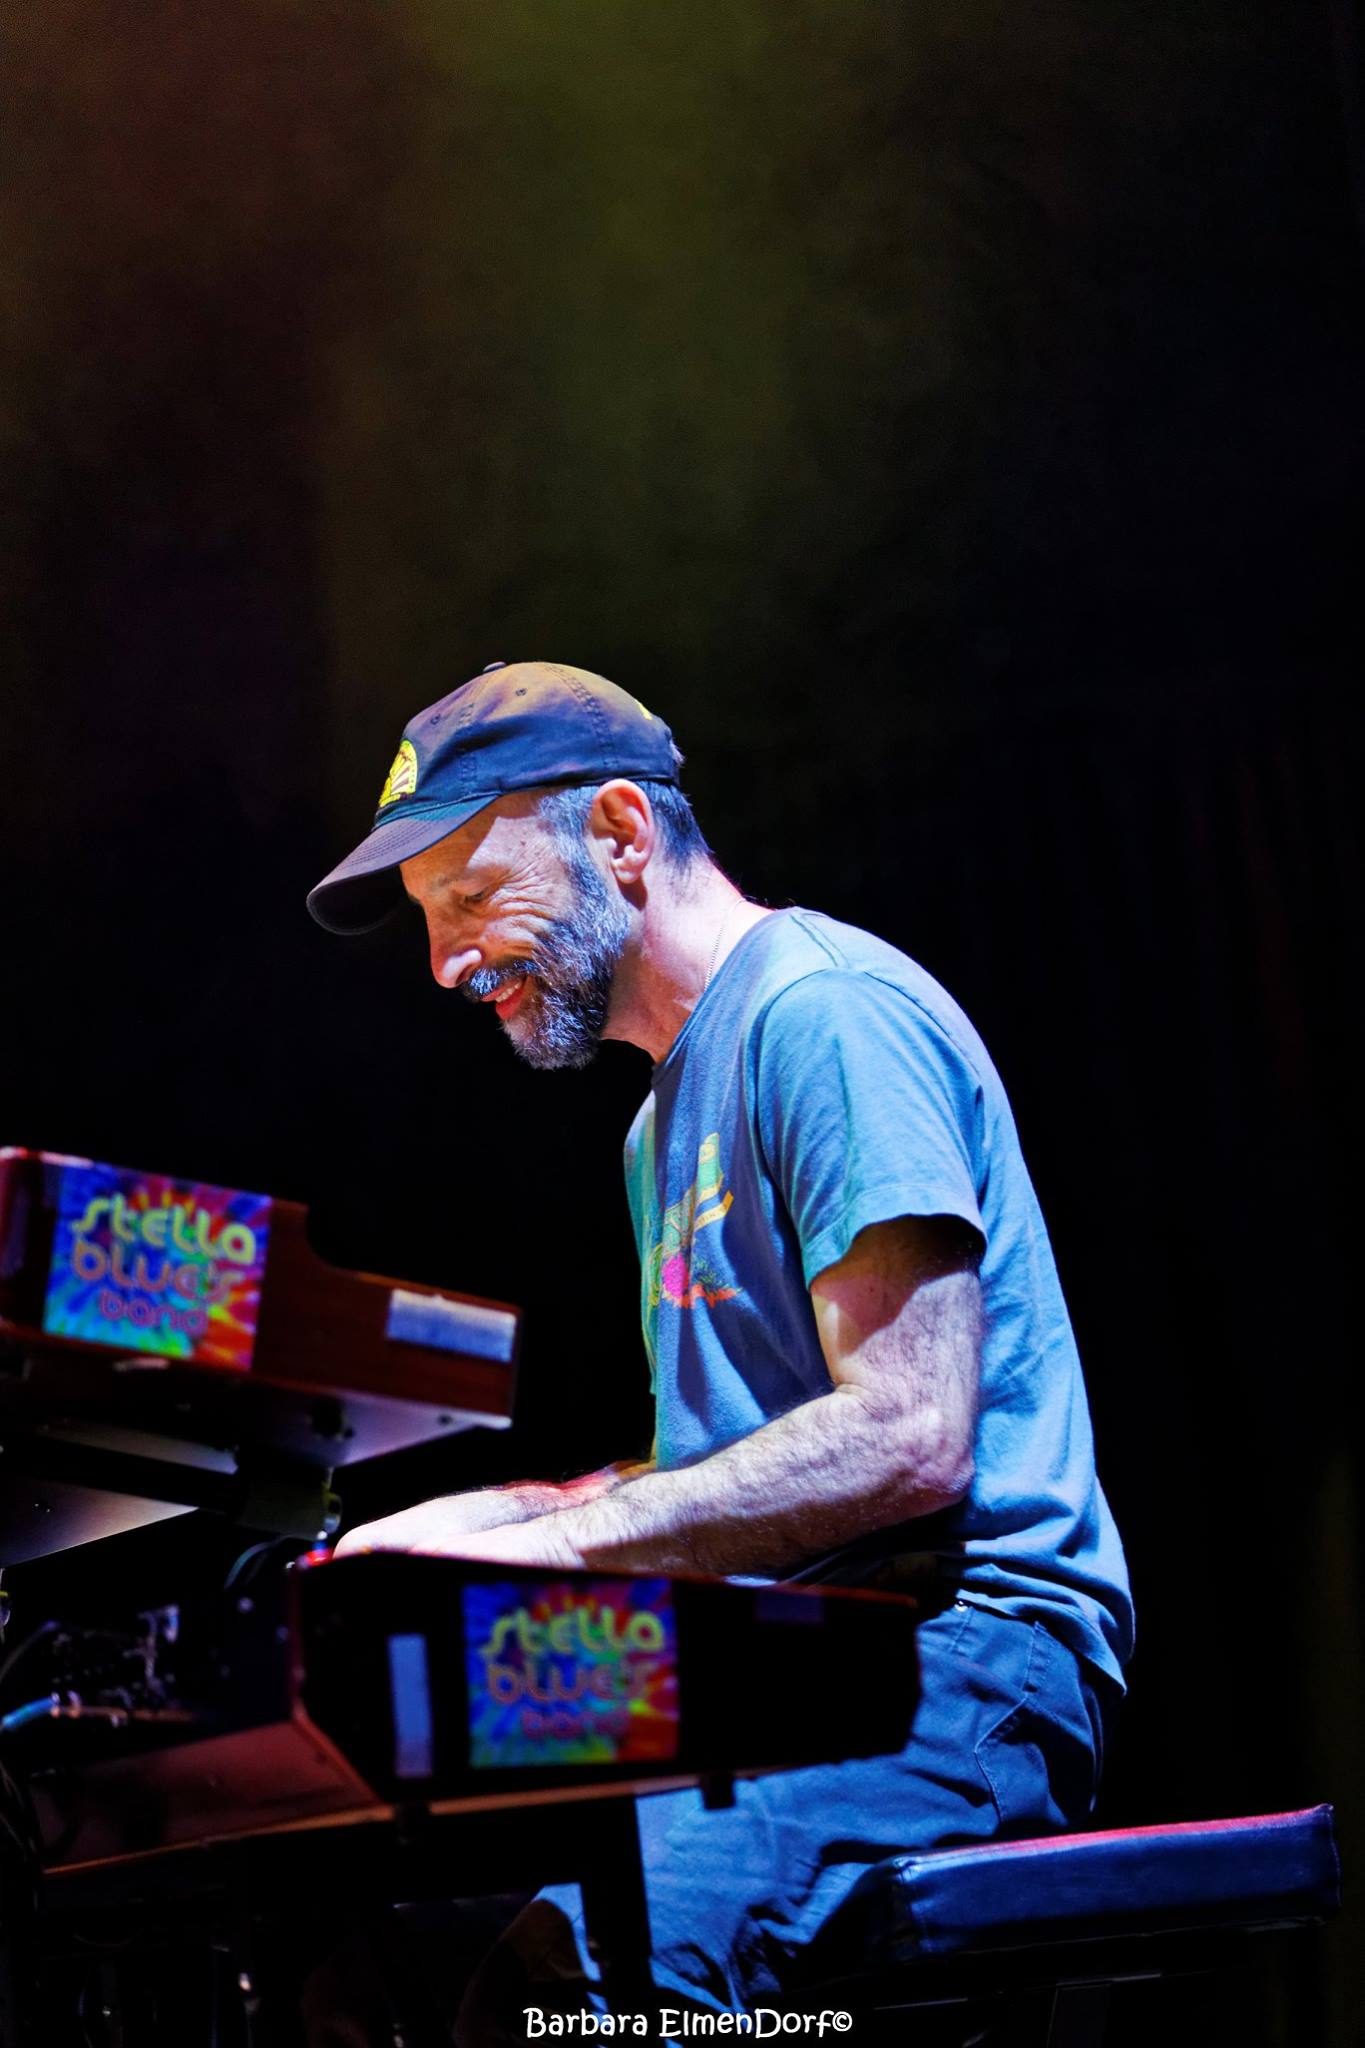 NYU professor Ken Aigen plays the keyboard with his Grateful Dead cover band. Aigen teaches music therapy at the Steinhardt School of Culture, Education and Human Development.